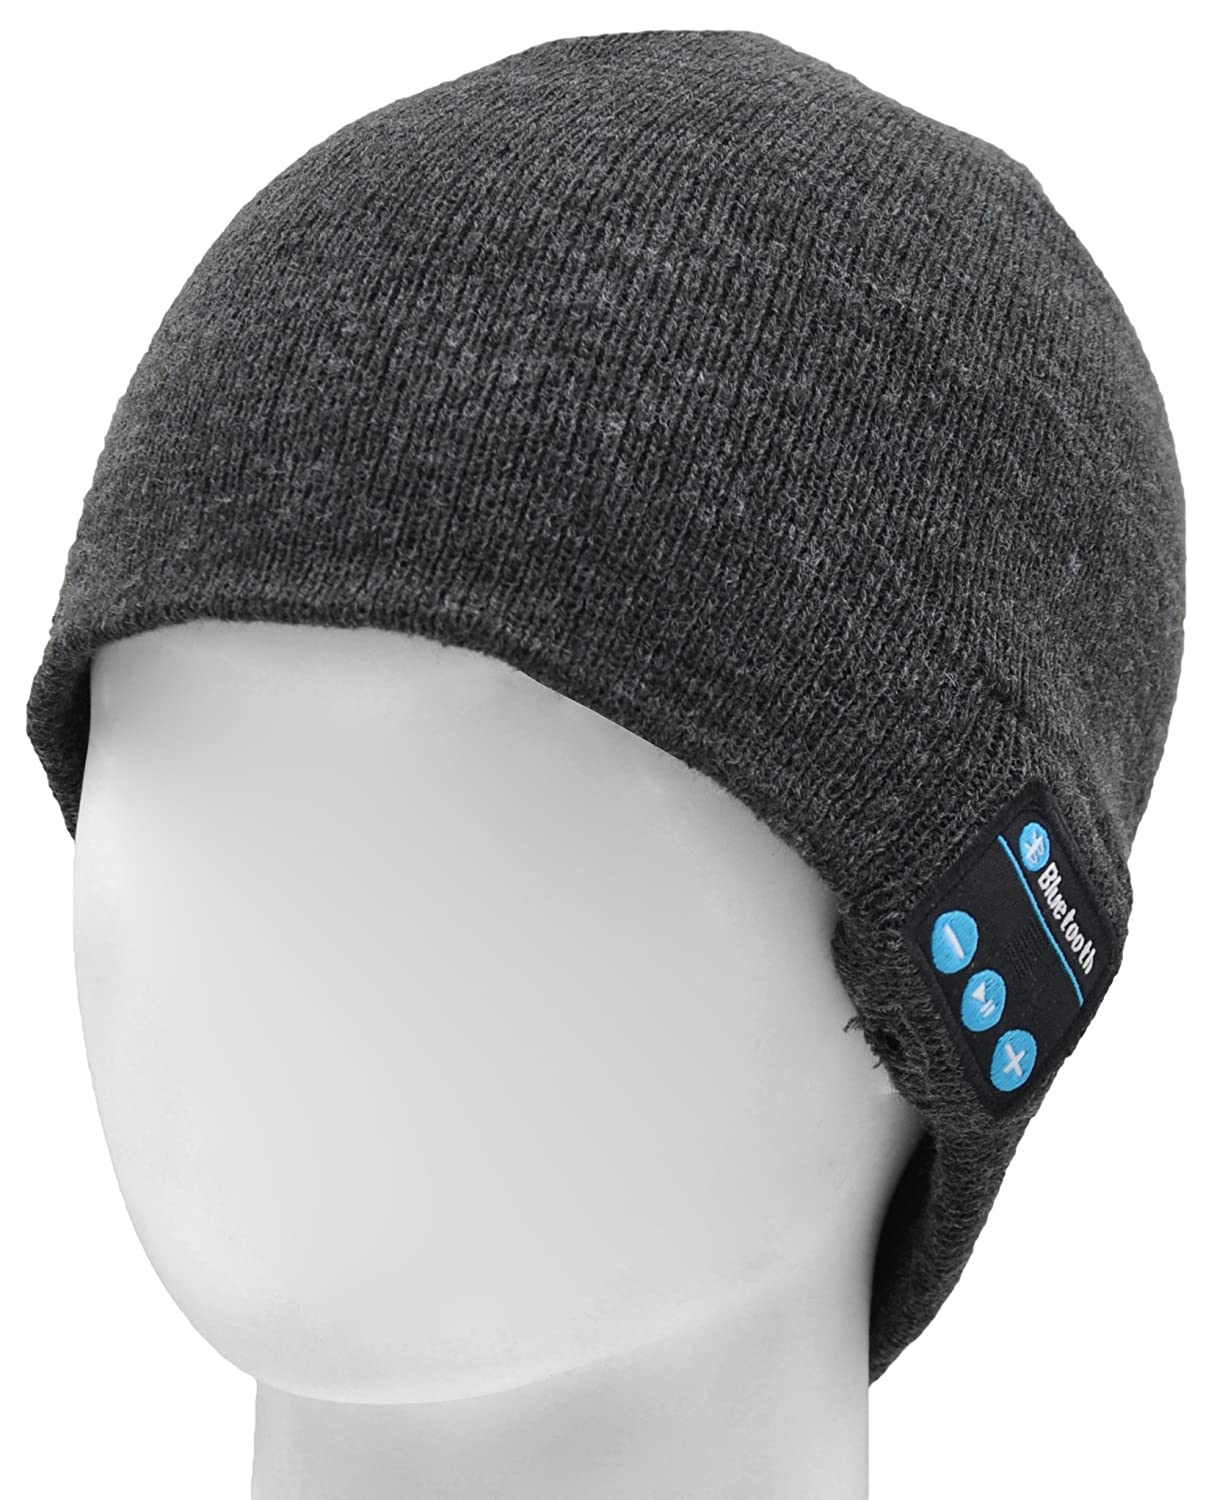 785bcc8a000 FULLLIGHT TECH Winter Comfy Bluetooth Beanie Hat Headphones With Speakers    Mic Hands Free Washable Outdoor